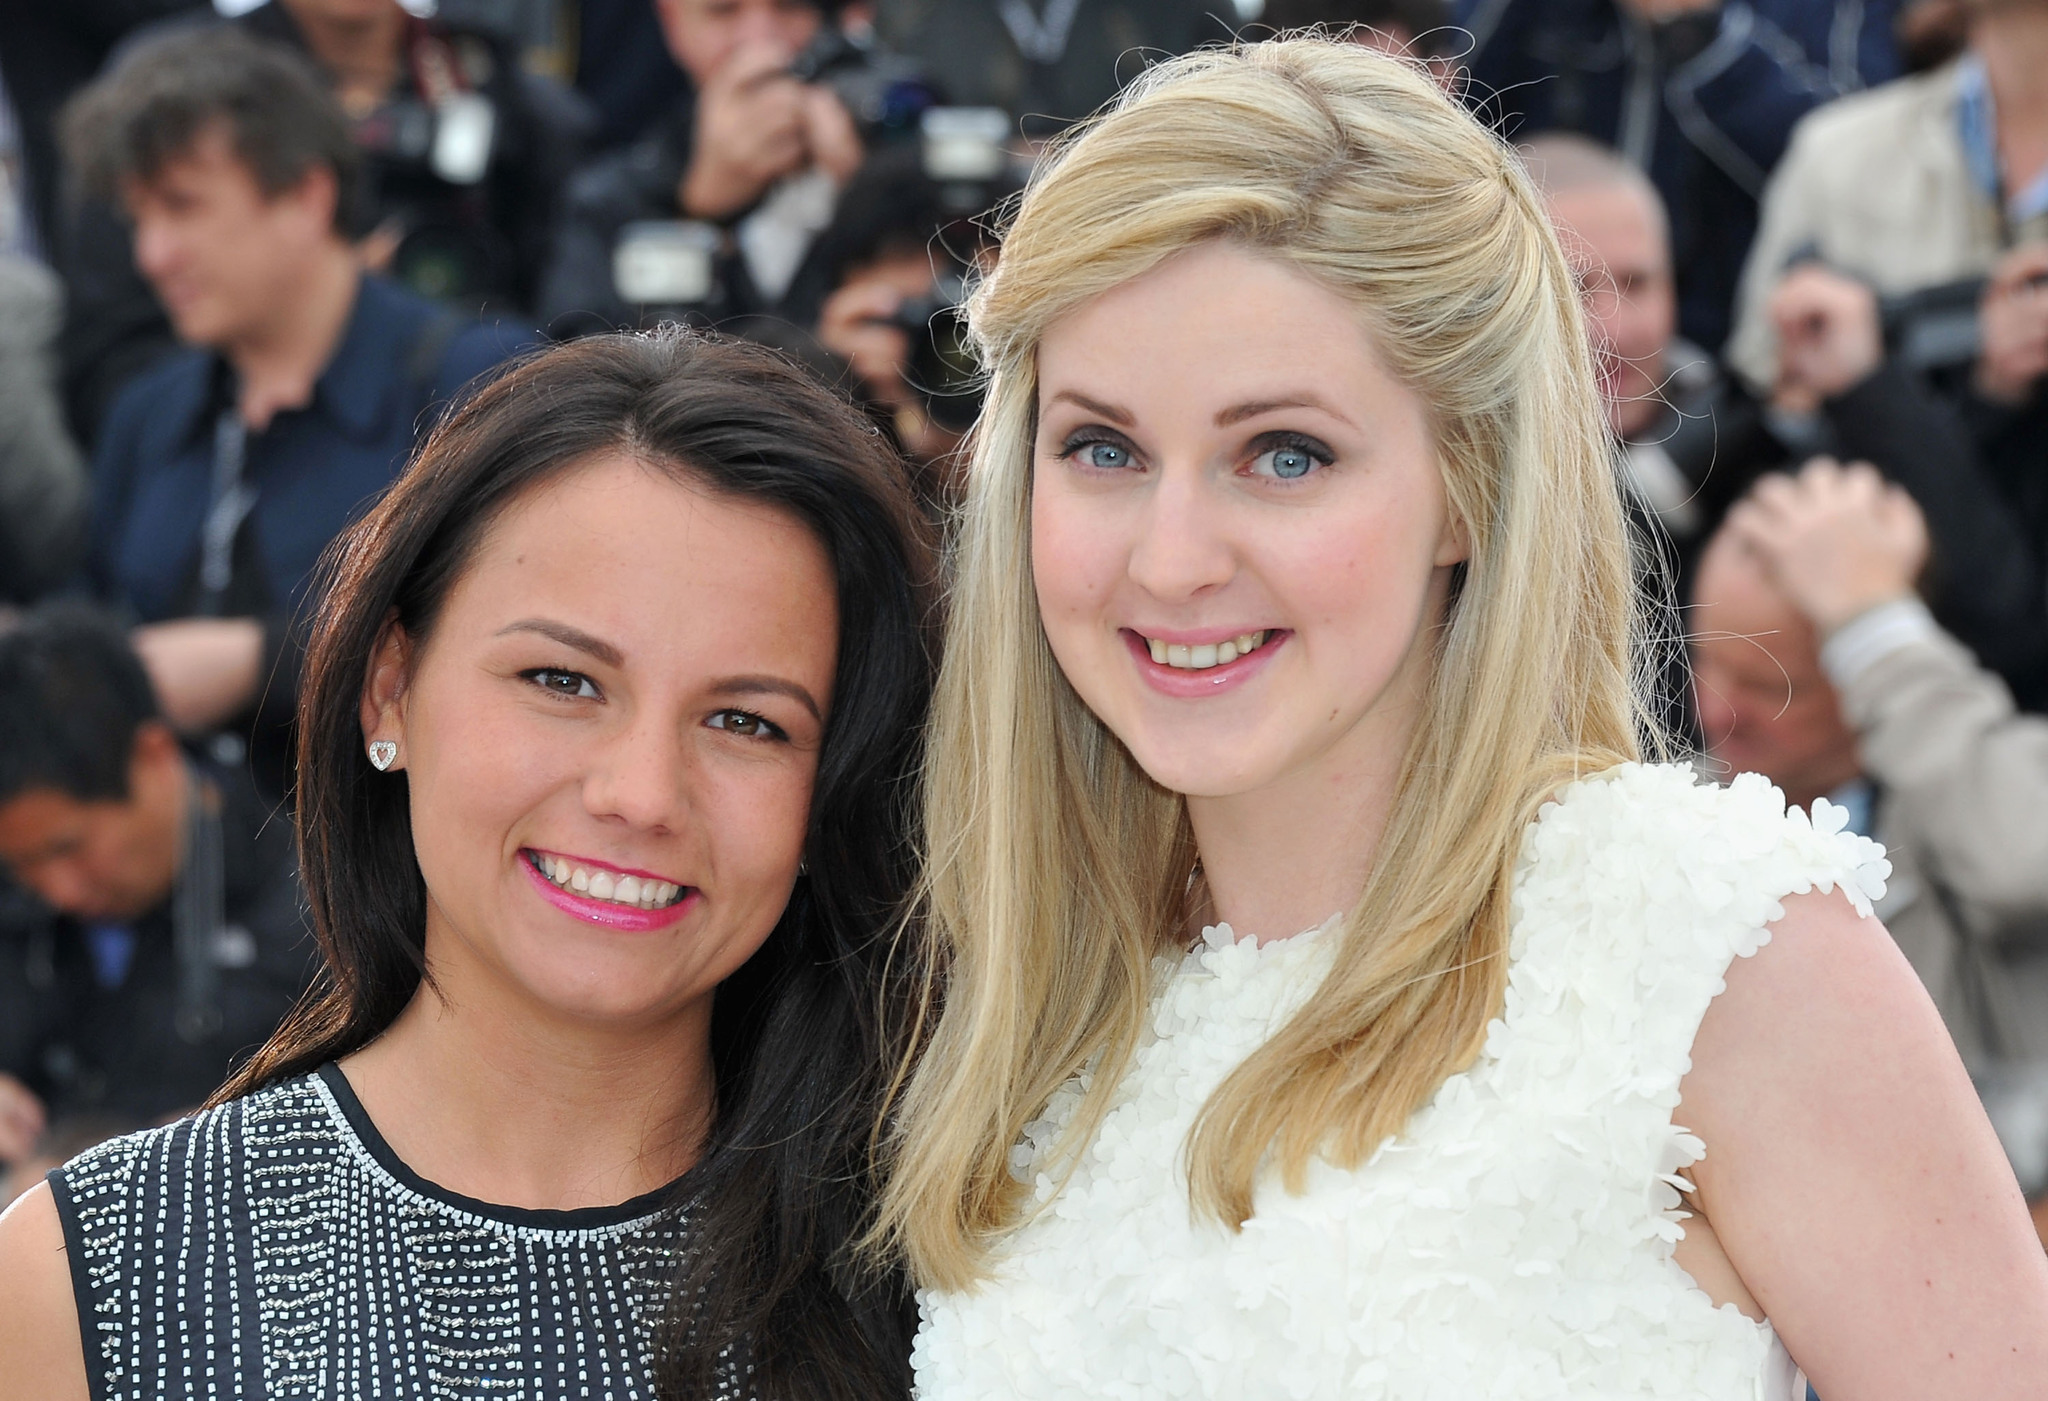 Siobhan Reilly and Jasmin Riggins at an event for The Angels' Share (2012)